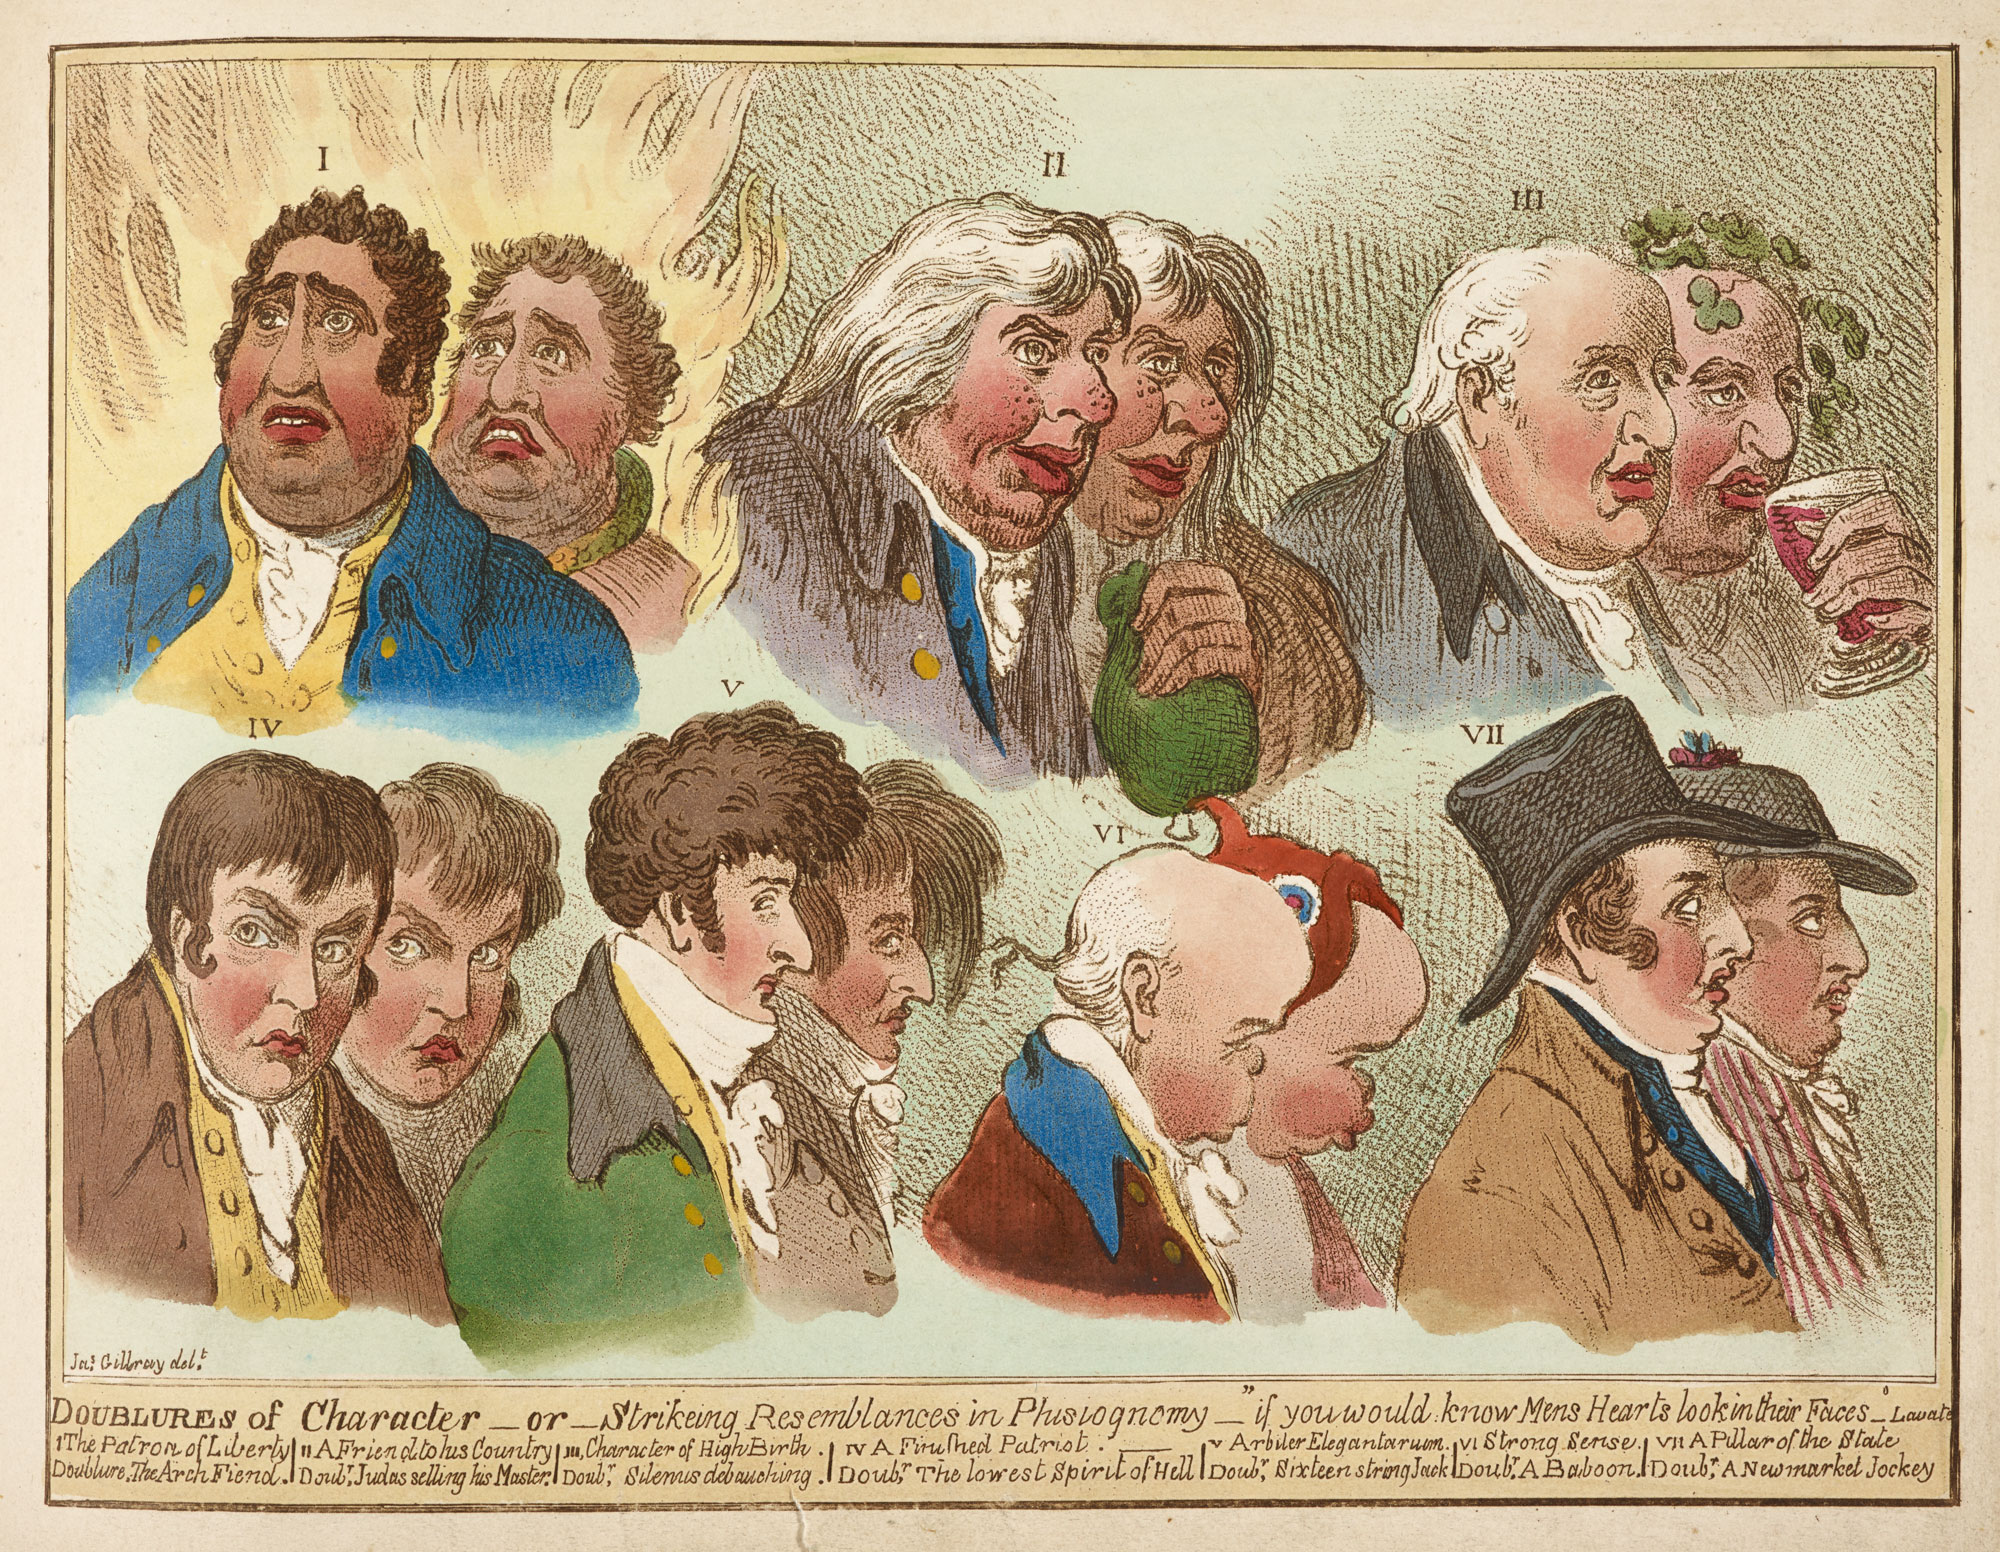 Doublures of Character - or - Strikeing Resemblances in Physiognomy' by Gillray [page: facing p. 82]